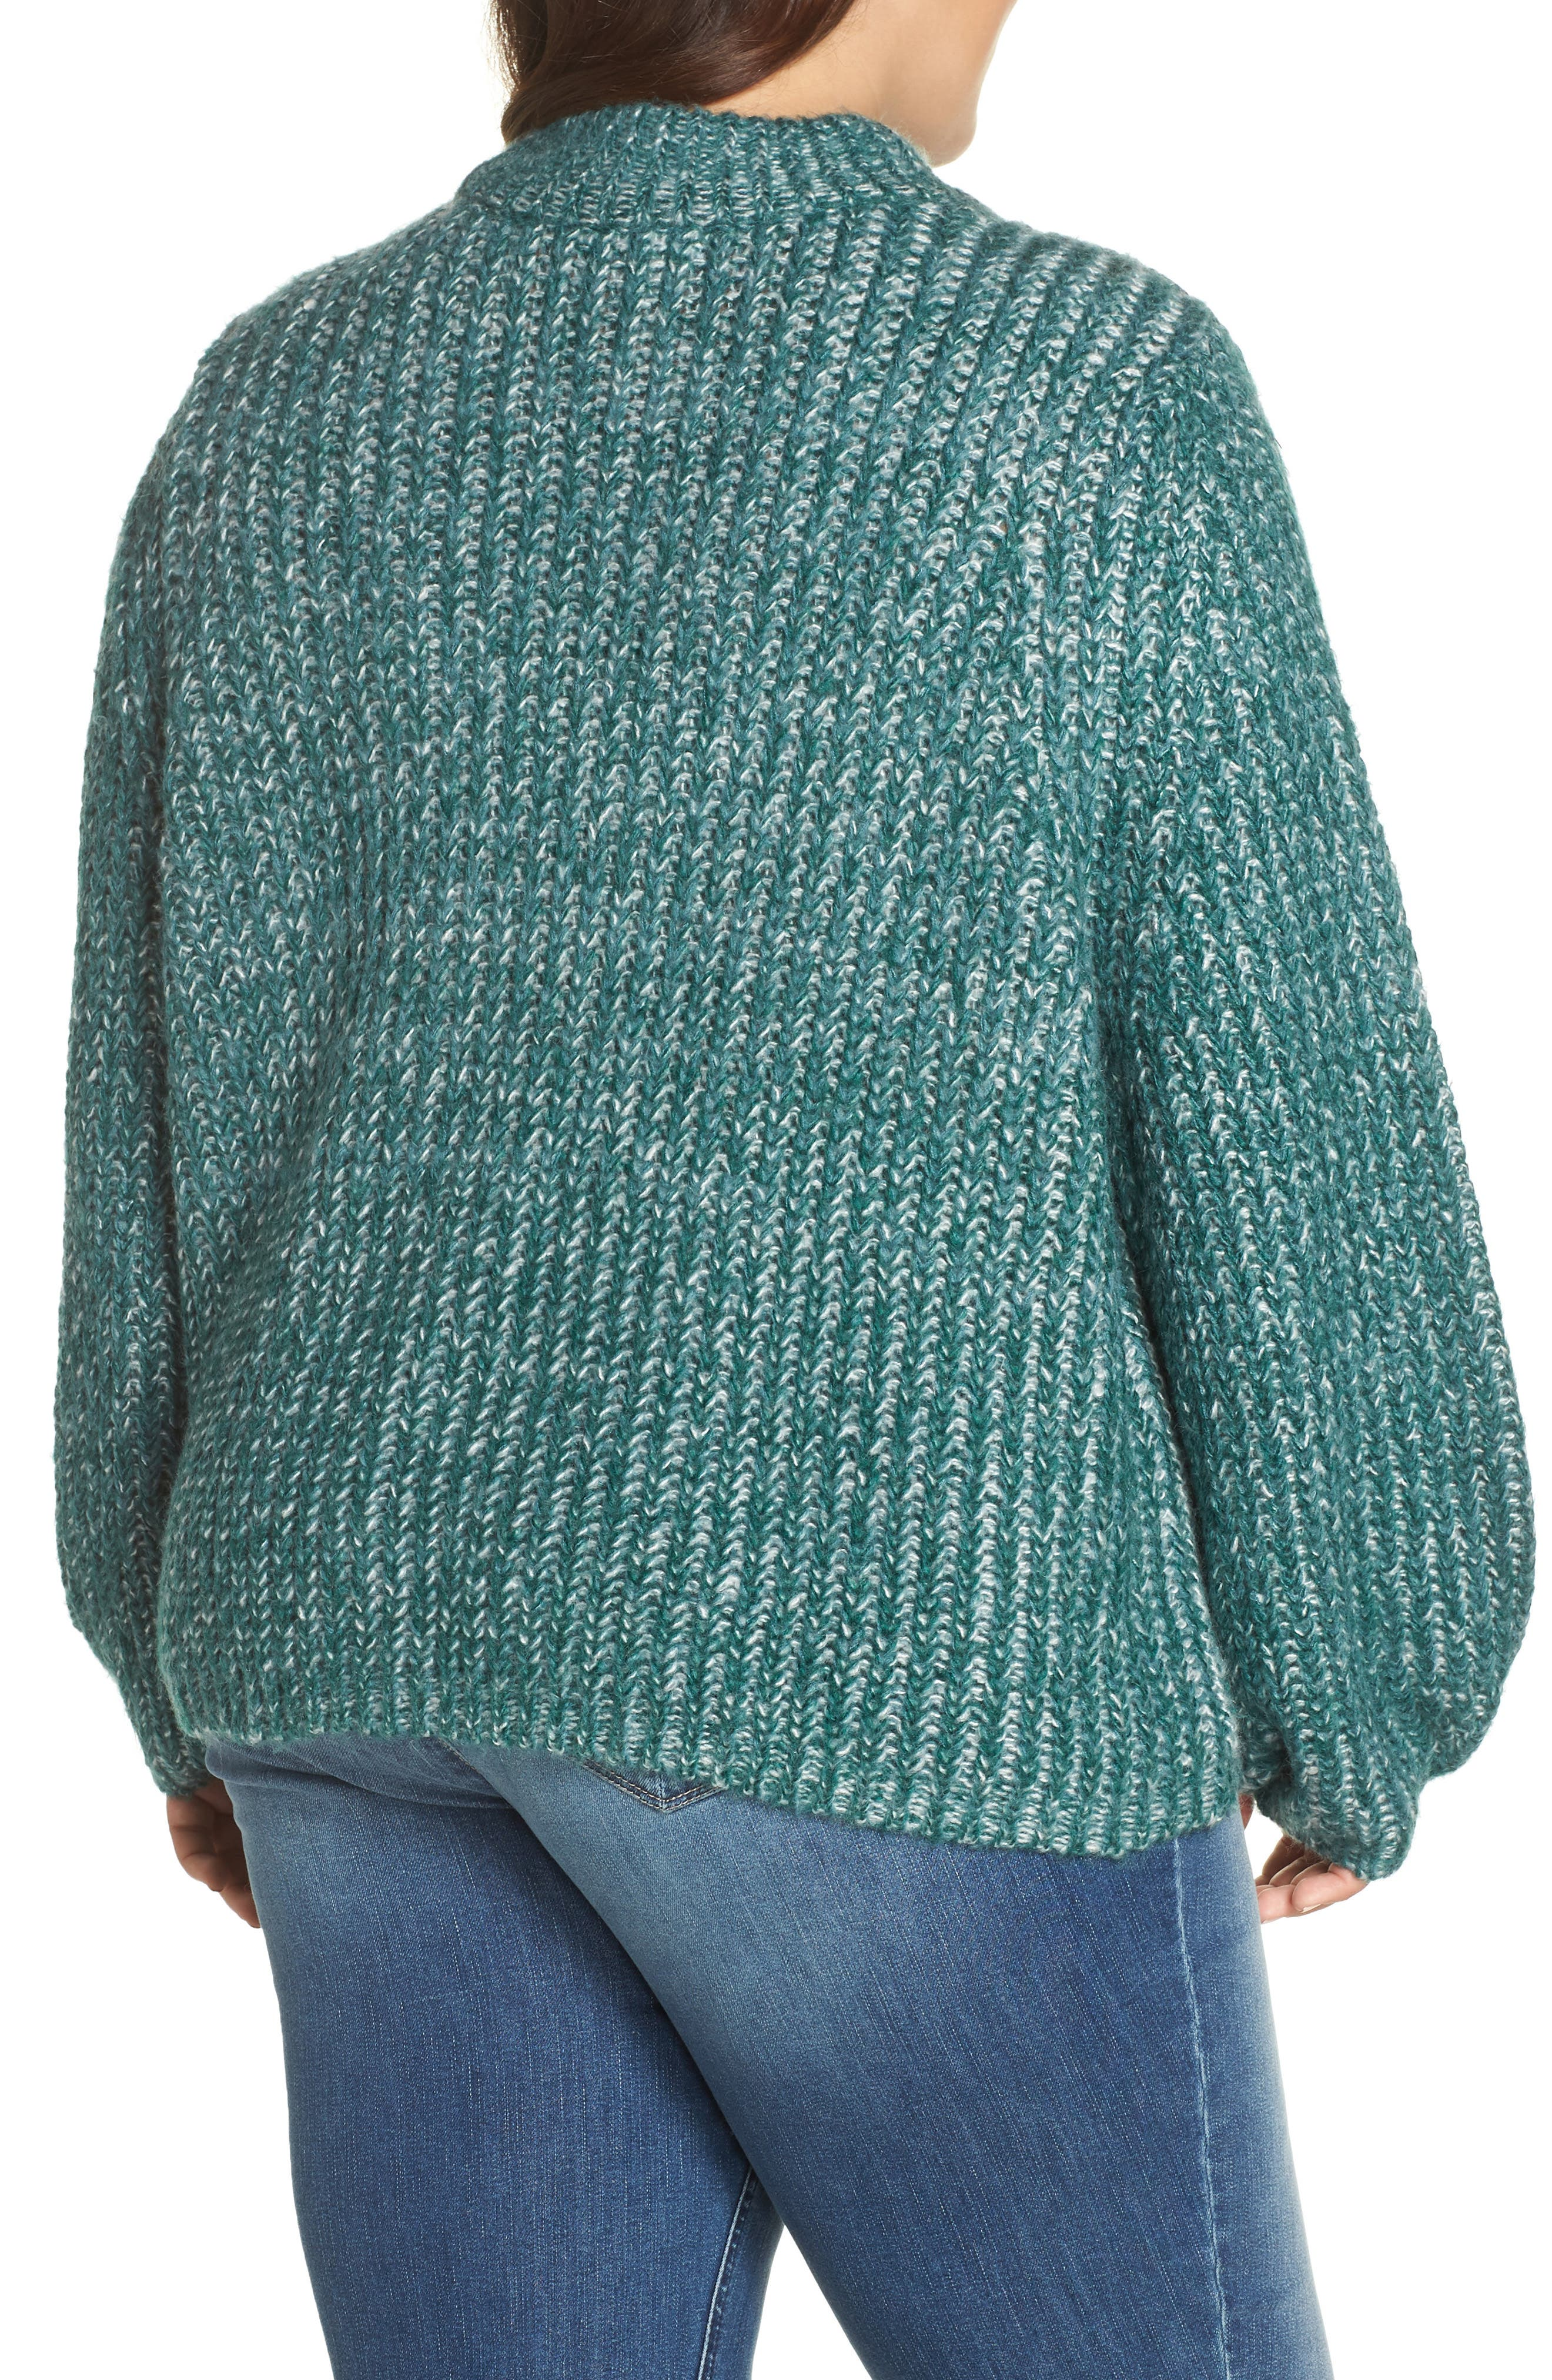 Marl Knit Sweater,                             Alternate thumbnail 2, color,                             TEAL HYDRO